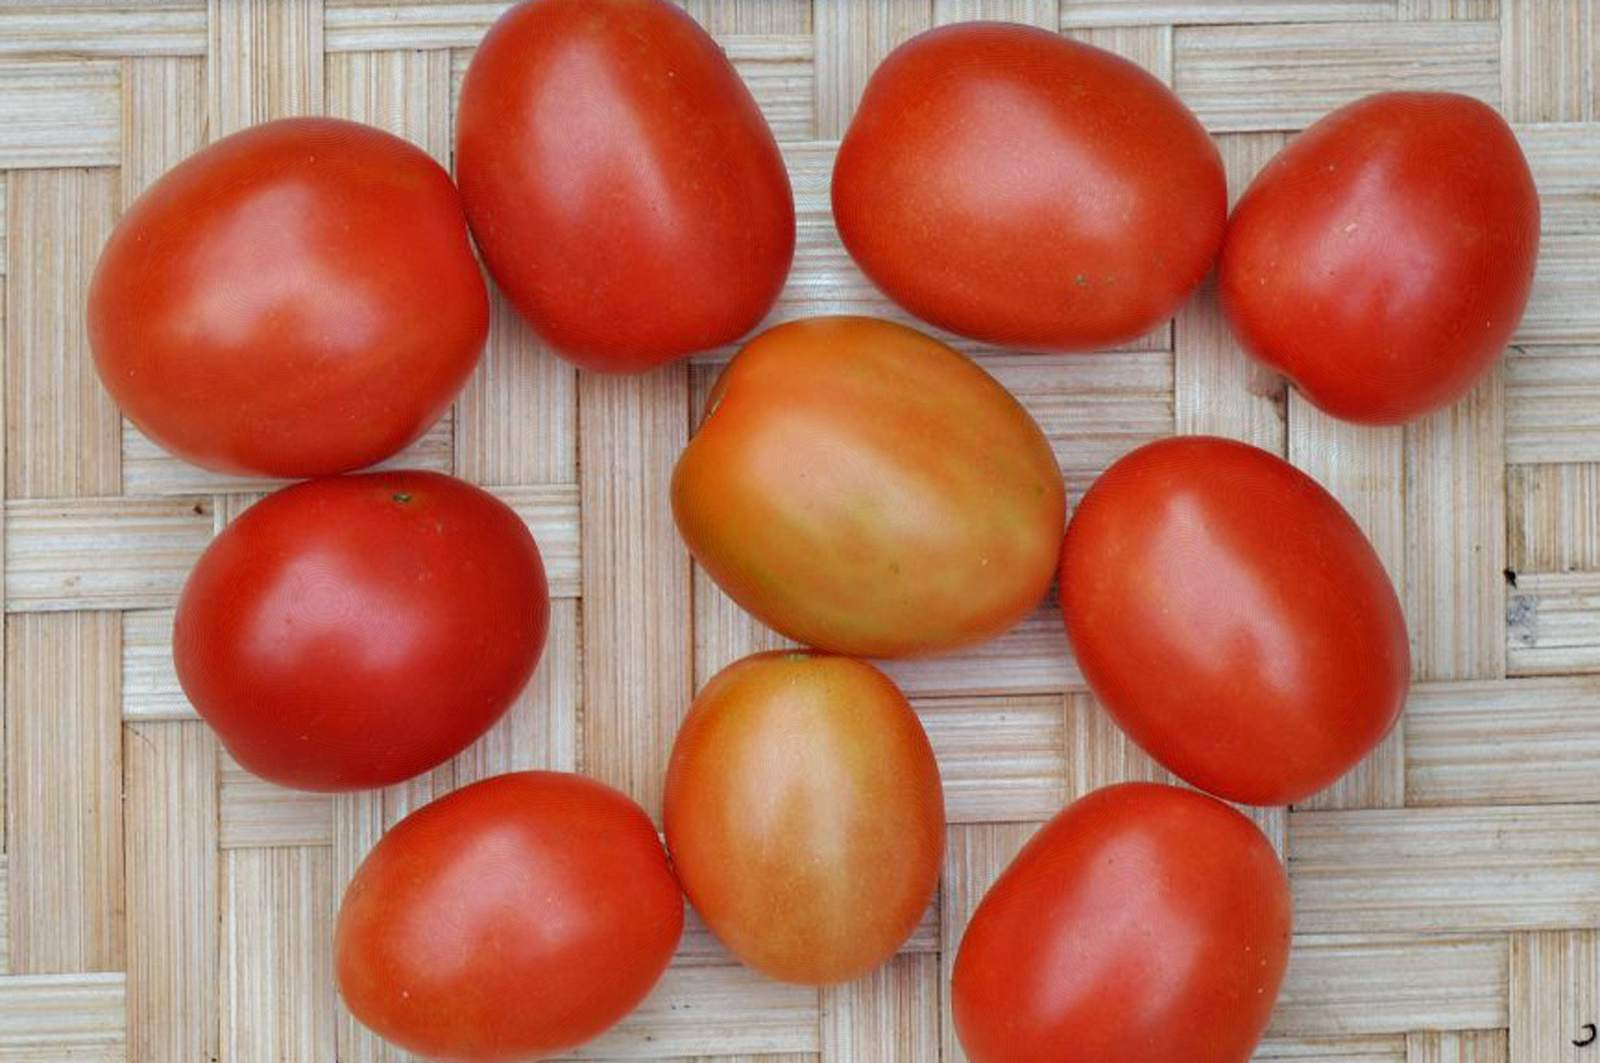 Close-up of some Principe Borghese tomatoes